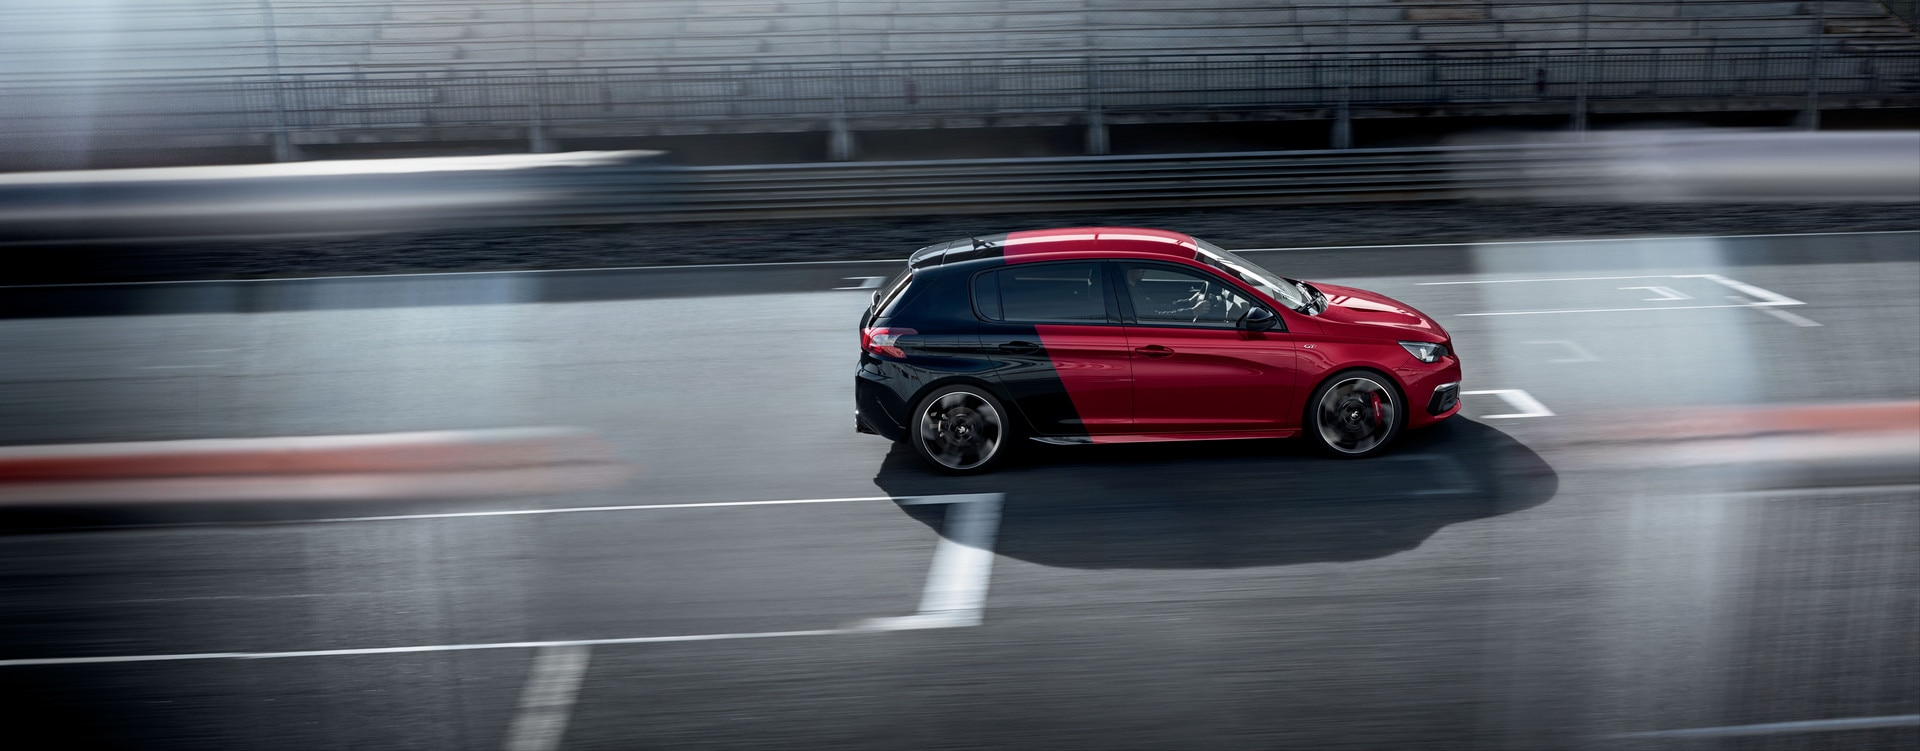 nouvelle peugeot 308 gti by peugeot sport d couvrez la. Black Bedroom Furniture Sets. Home Design Ideas